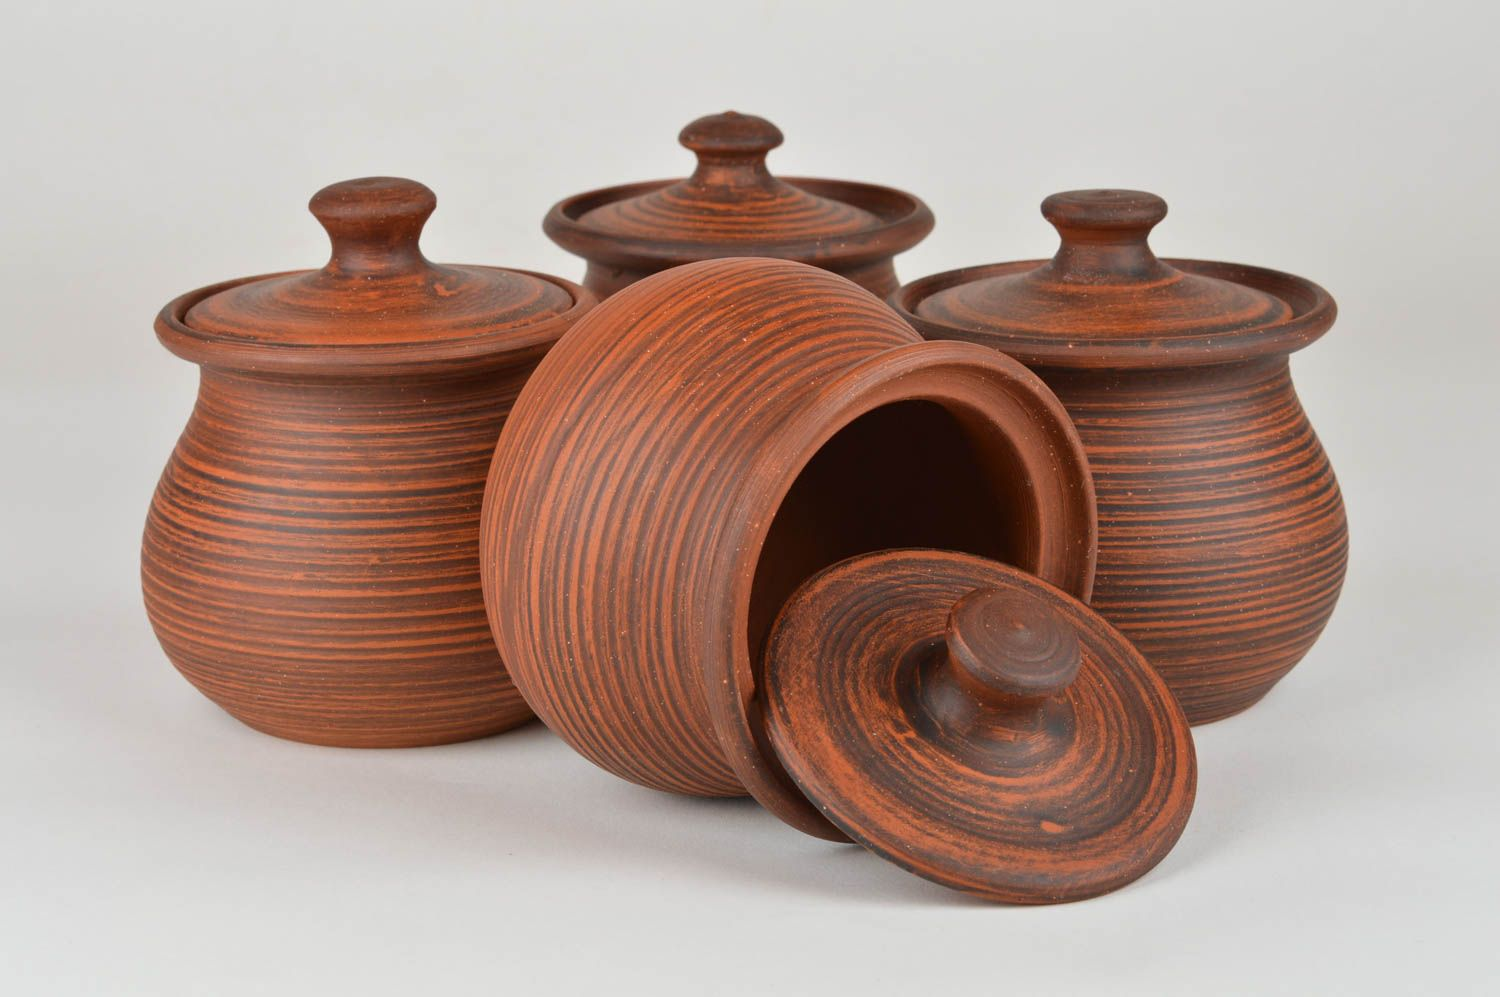 Set of handmade ceramic pots with lids for baking 4 items for 400 ml photo 6